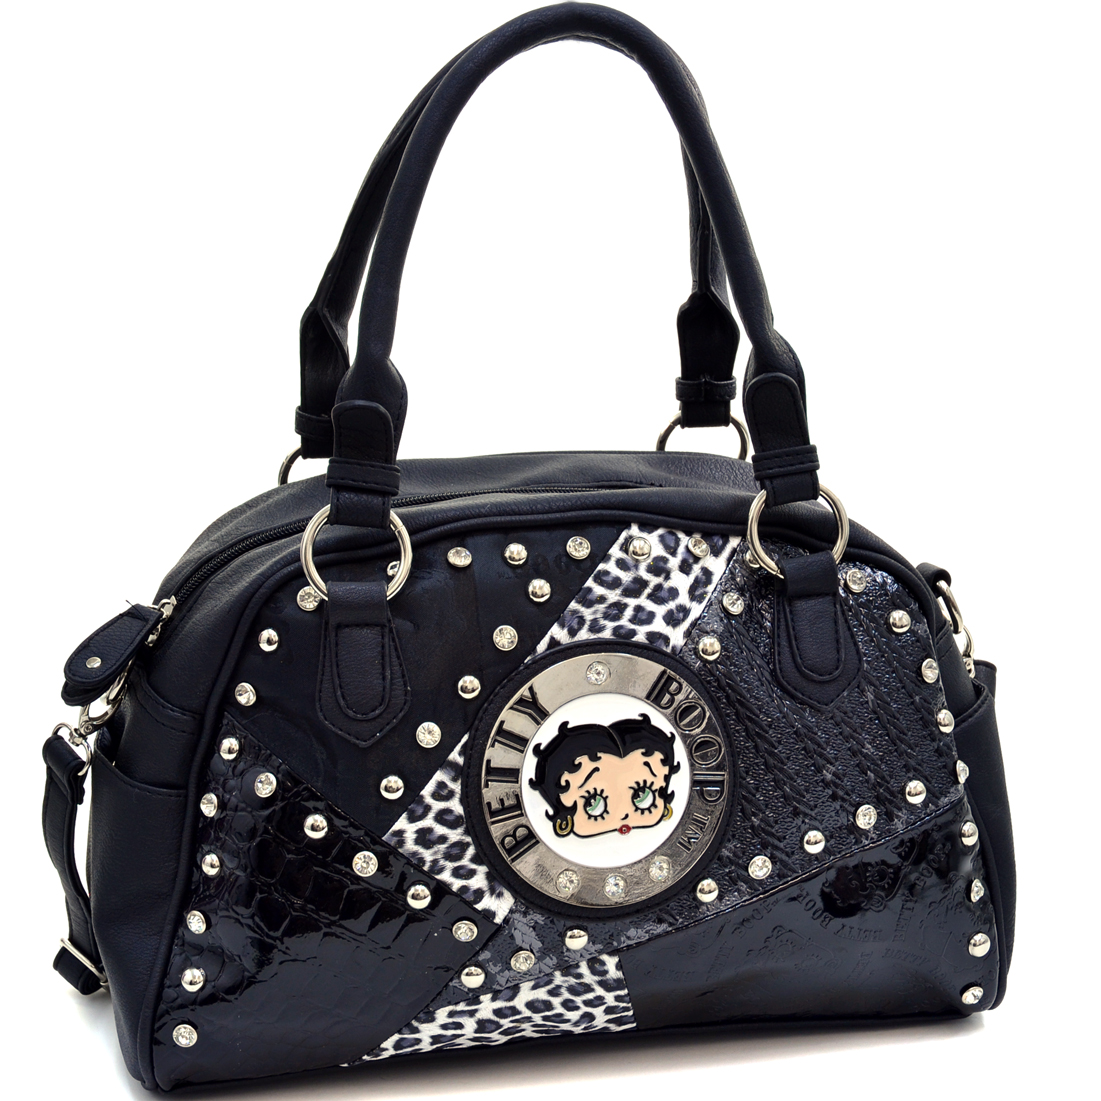 Betty Boop Multi-Patched Bowler Satchel Bag